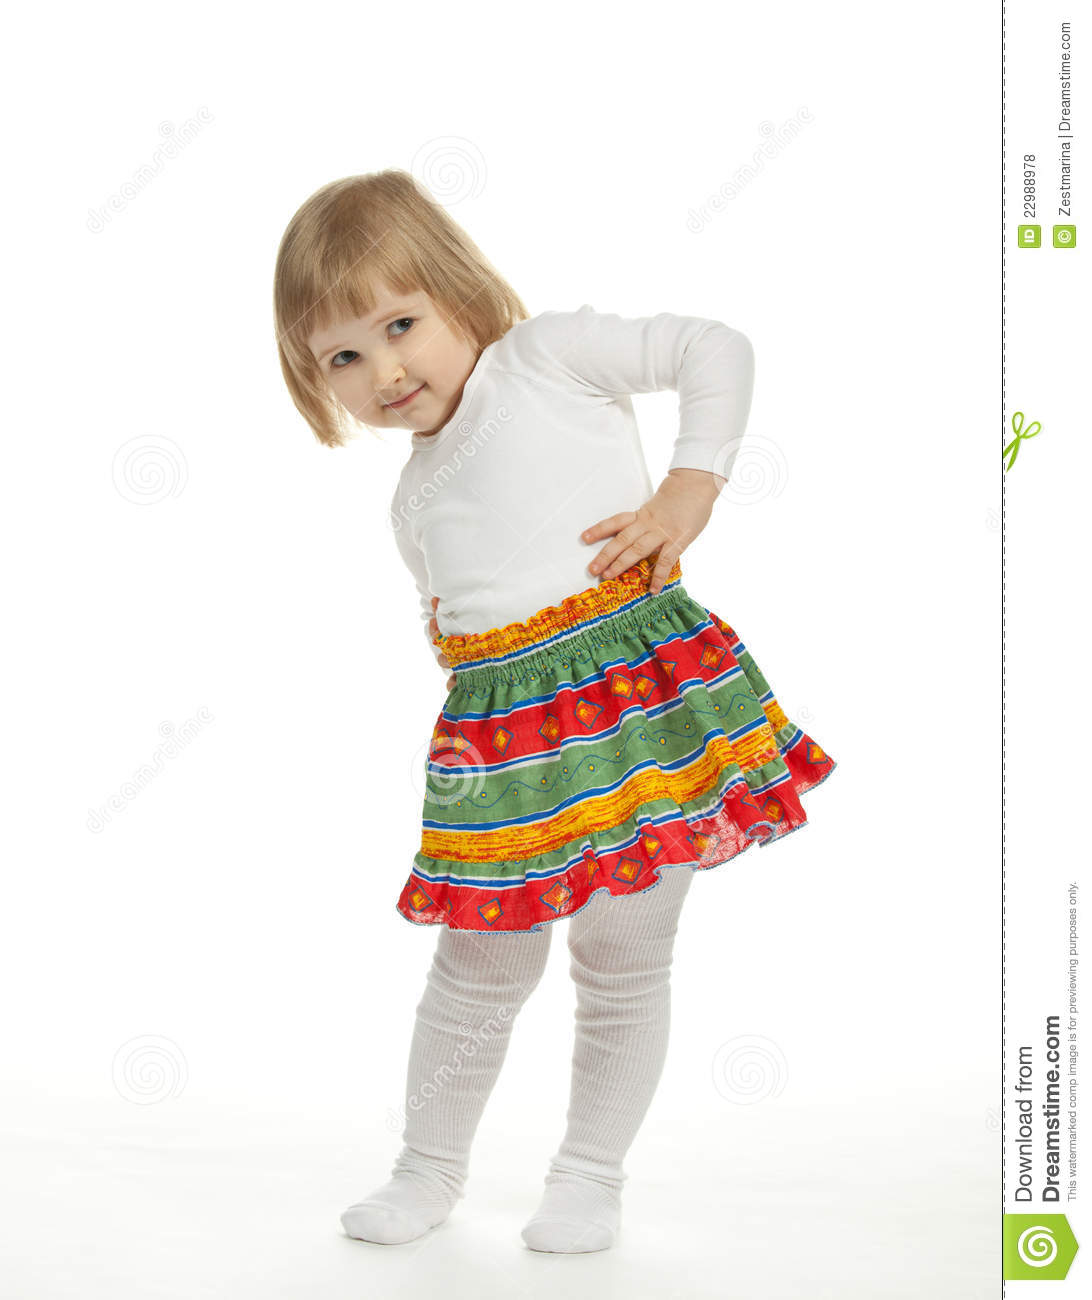 Dancing Baby Girl Royalty Free Stock Photos - Image: 22988978: dreamstime.com/royalty-free-stock-photos-dancing-baby-girl...